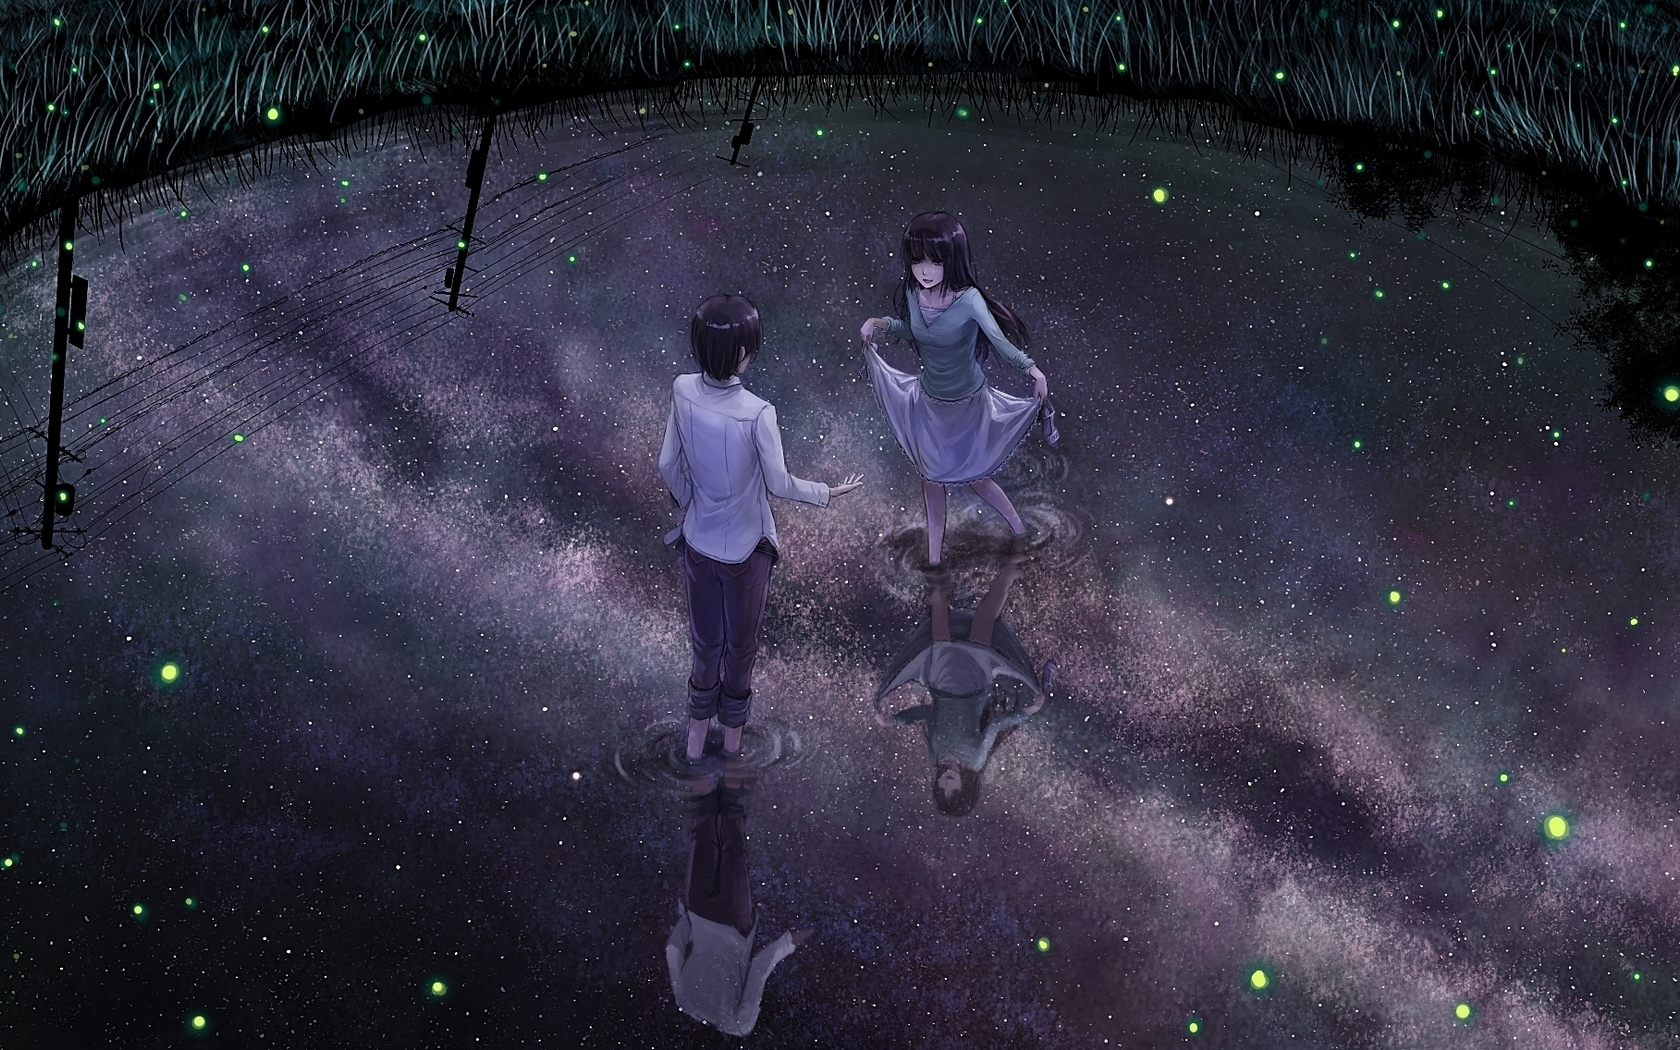 Anime Guy Wallpaper Girl Lake Water Night Widescreen Pictures 1680x1050